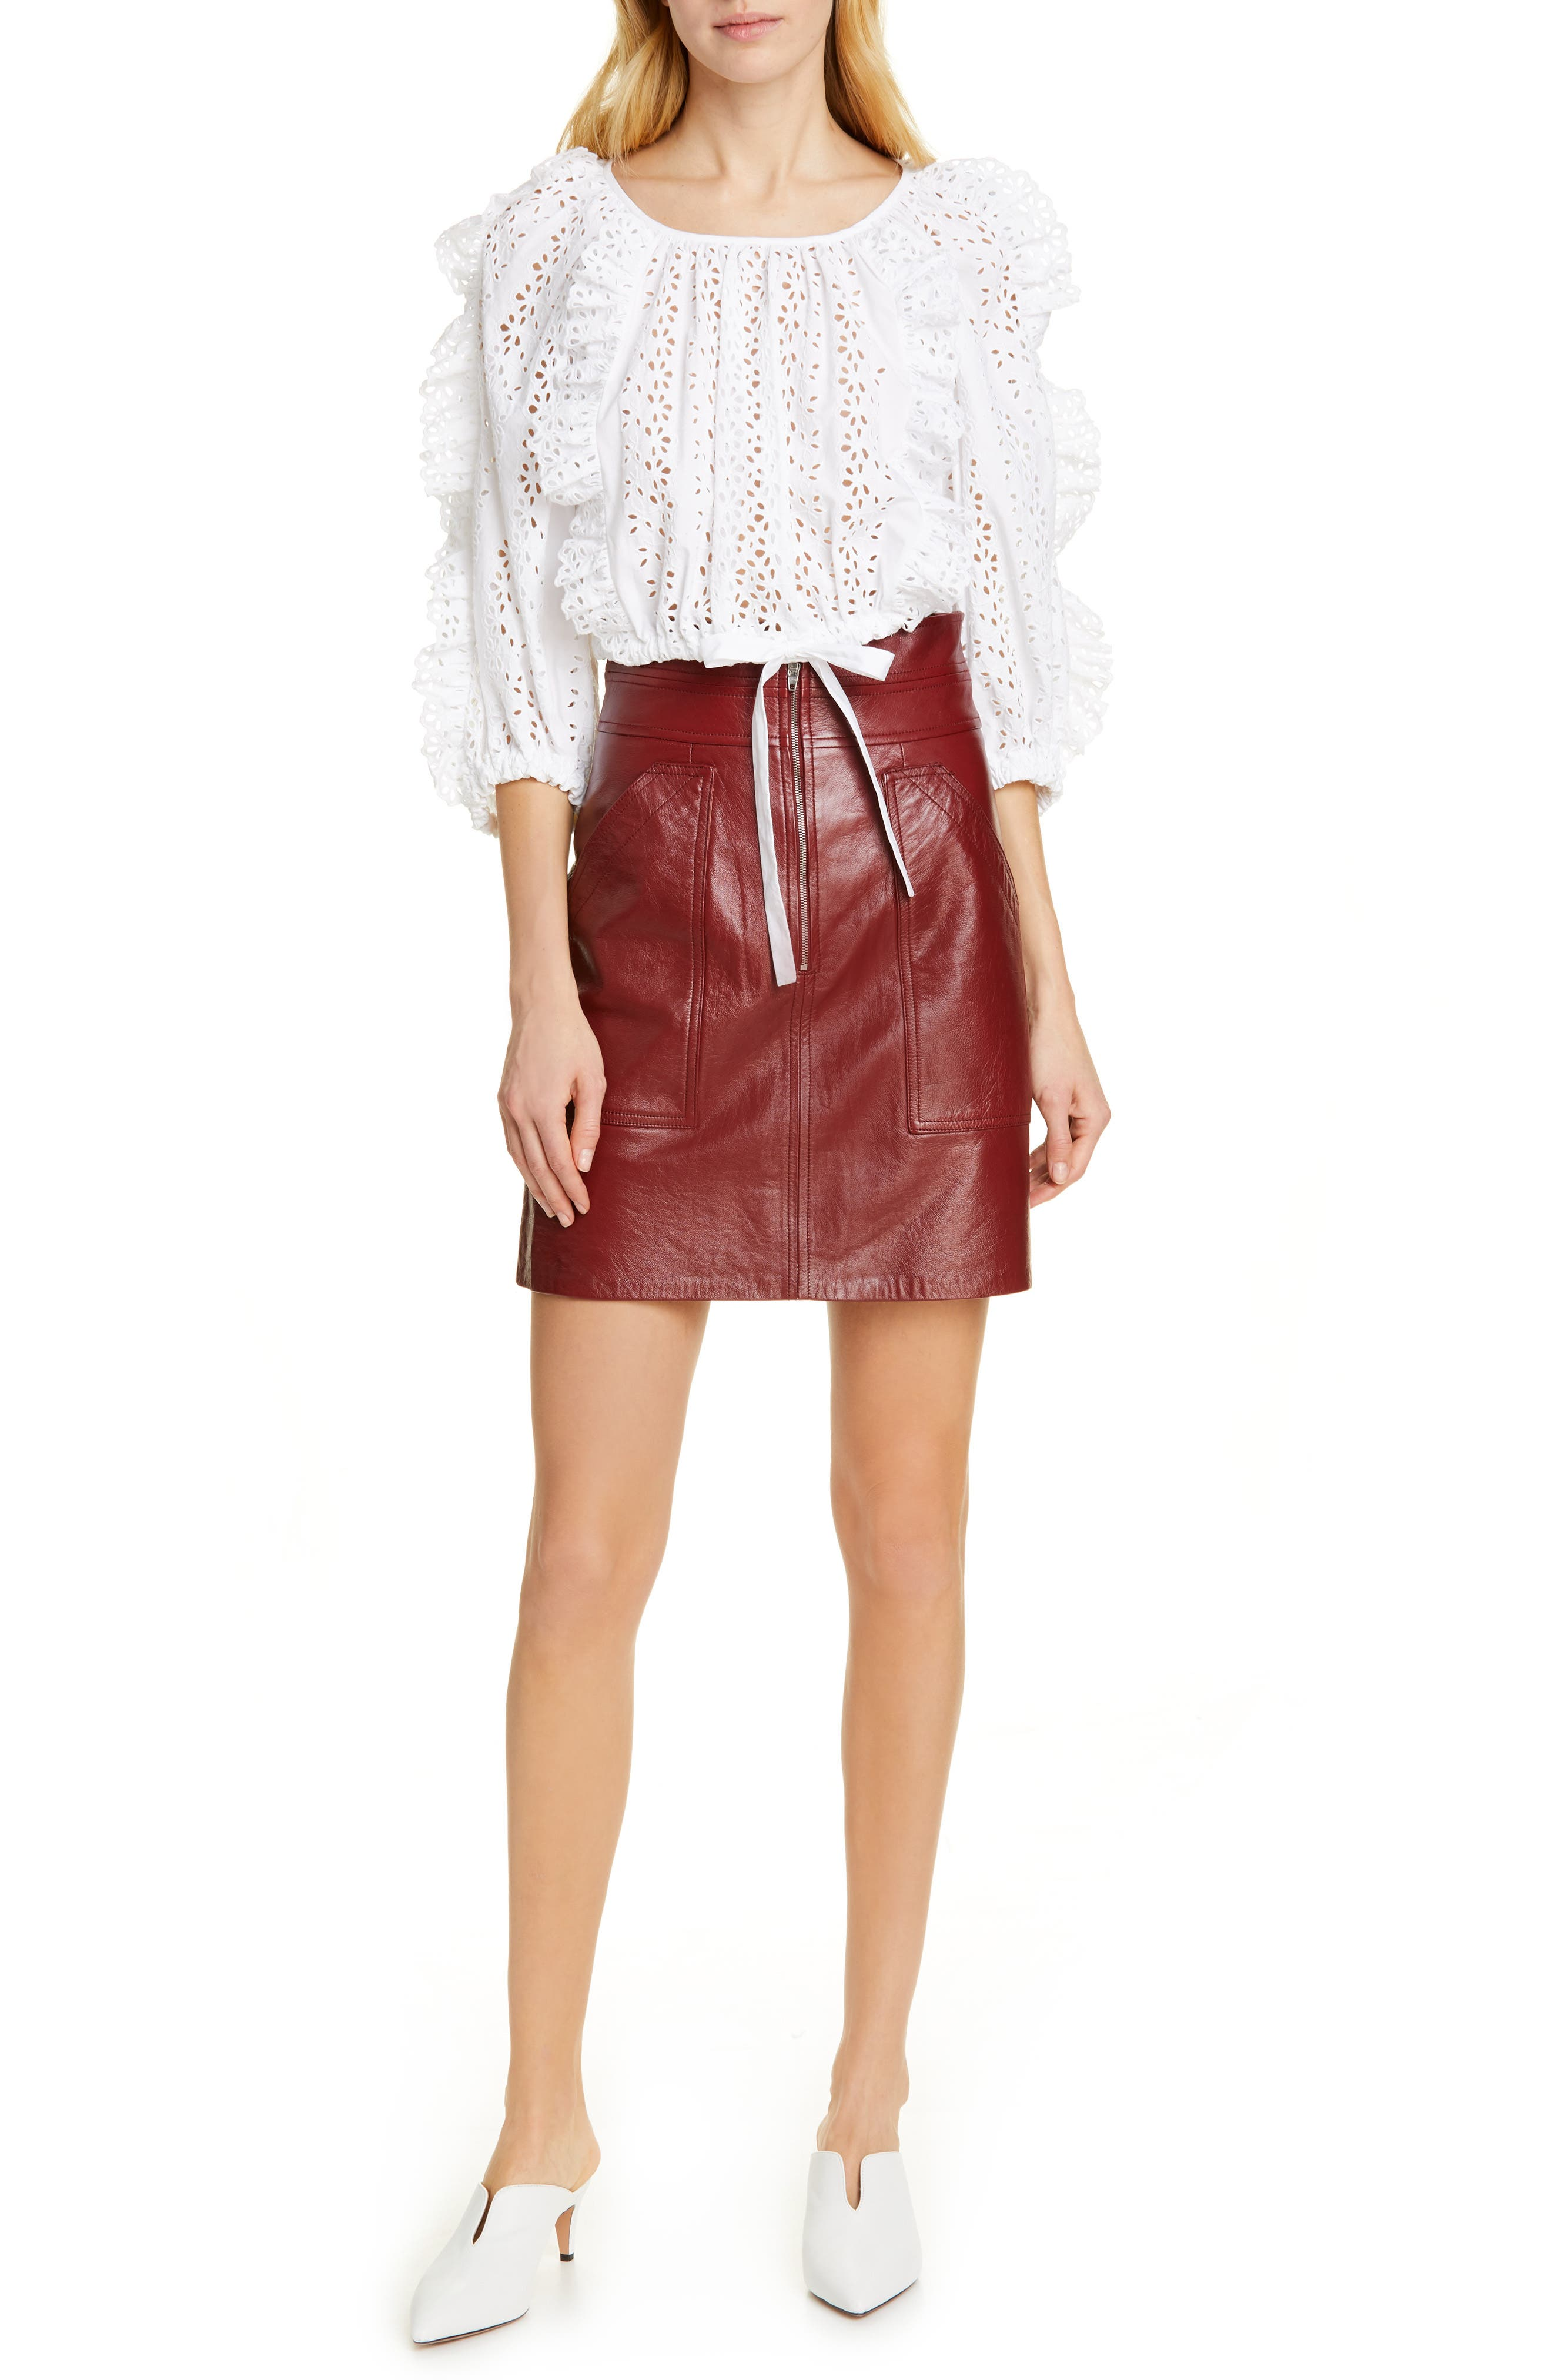 REBECCA TAYLOR, Leather Skirt, Alternate thumbnail 7, color, SPICE